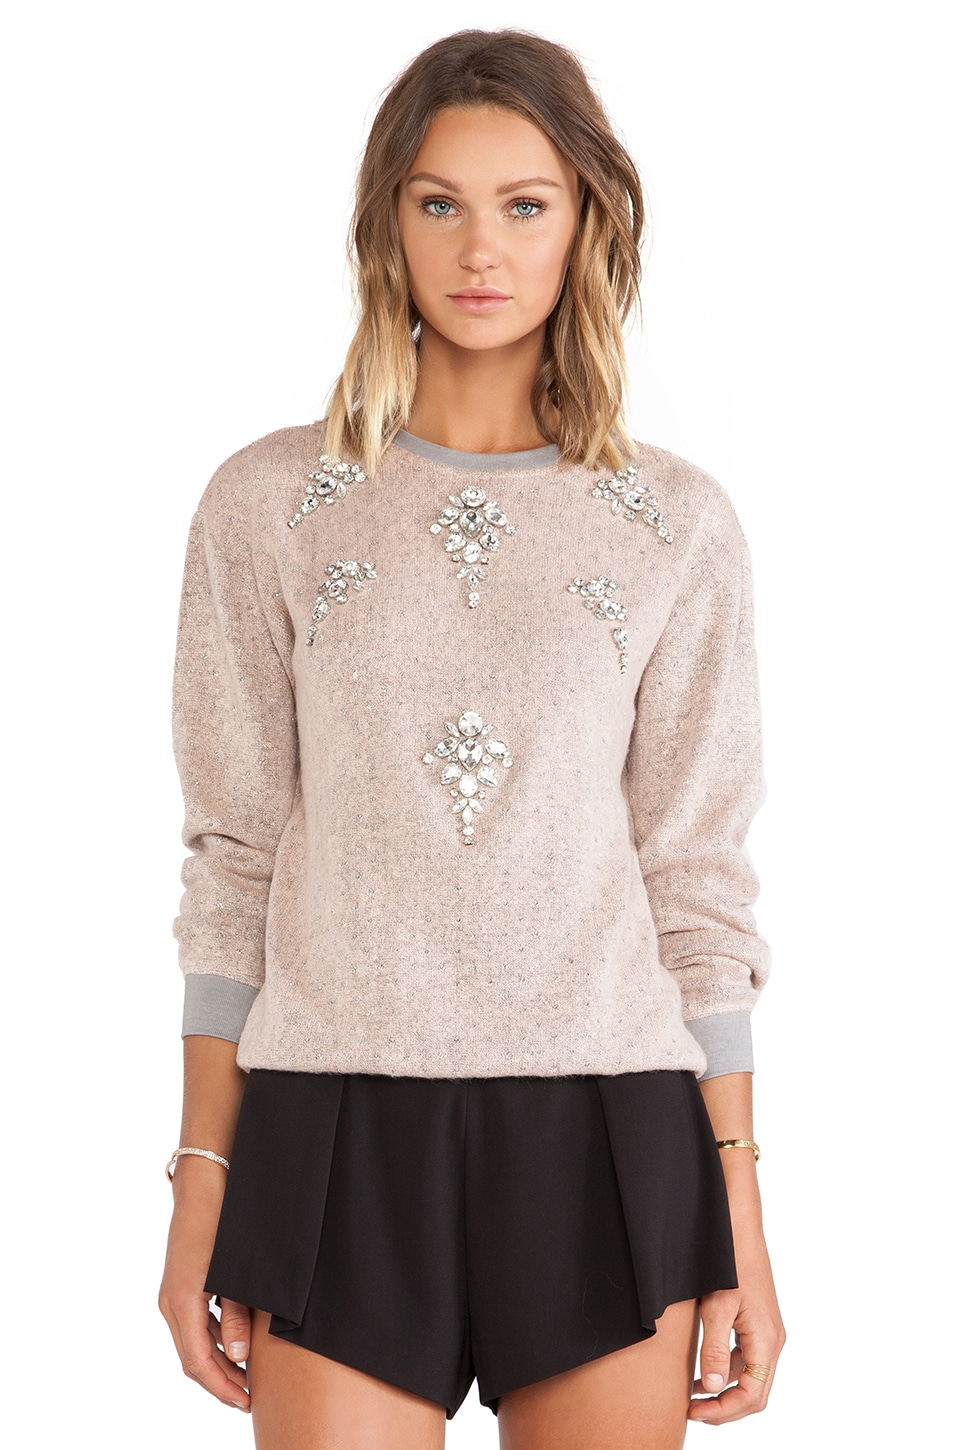 HEMANT AND NANDITA Pop Melange Woolen Sweatshirt in Pink & Grey